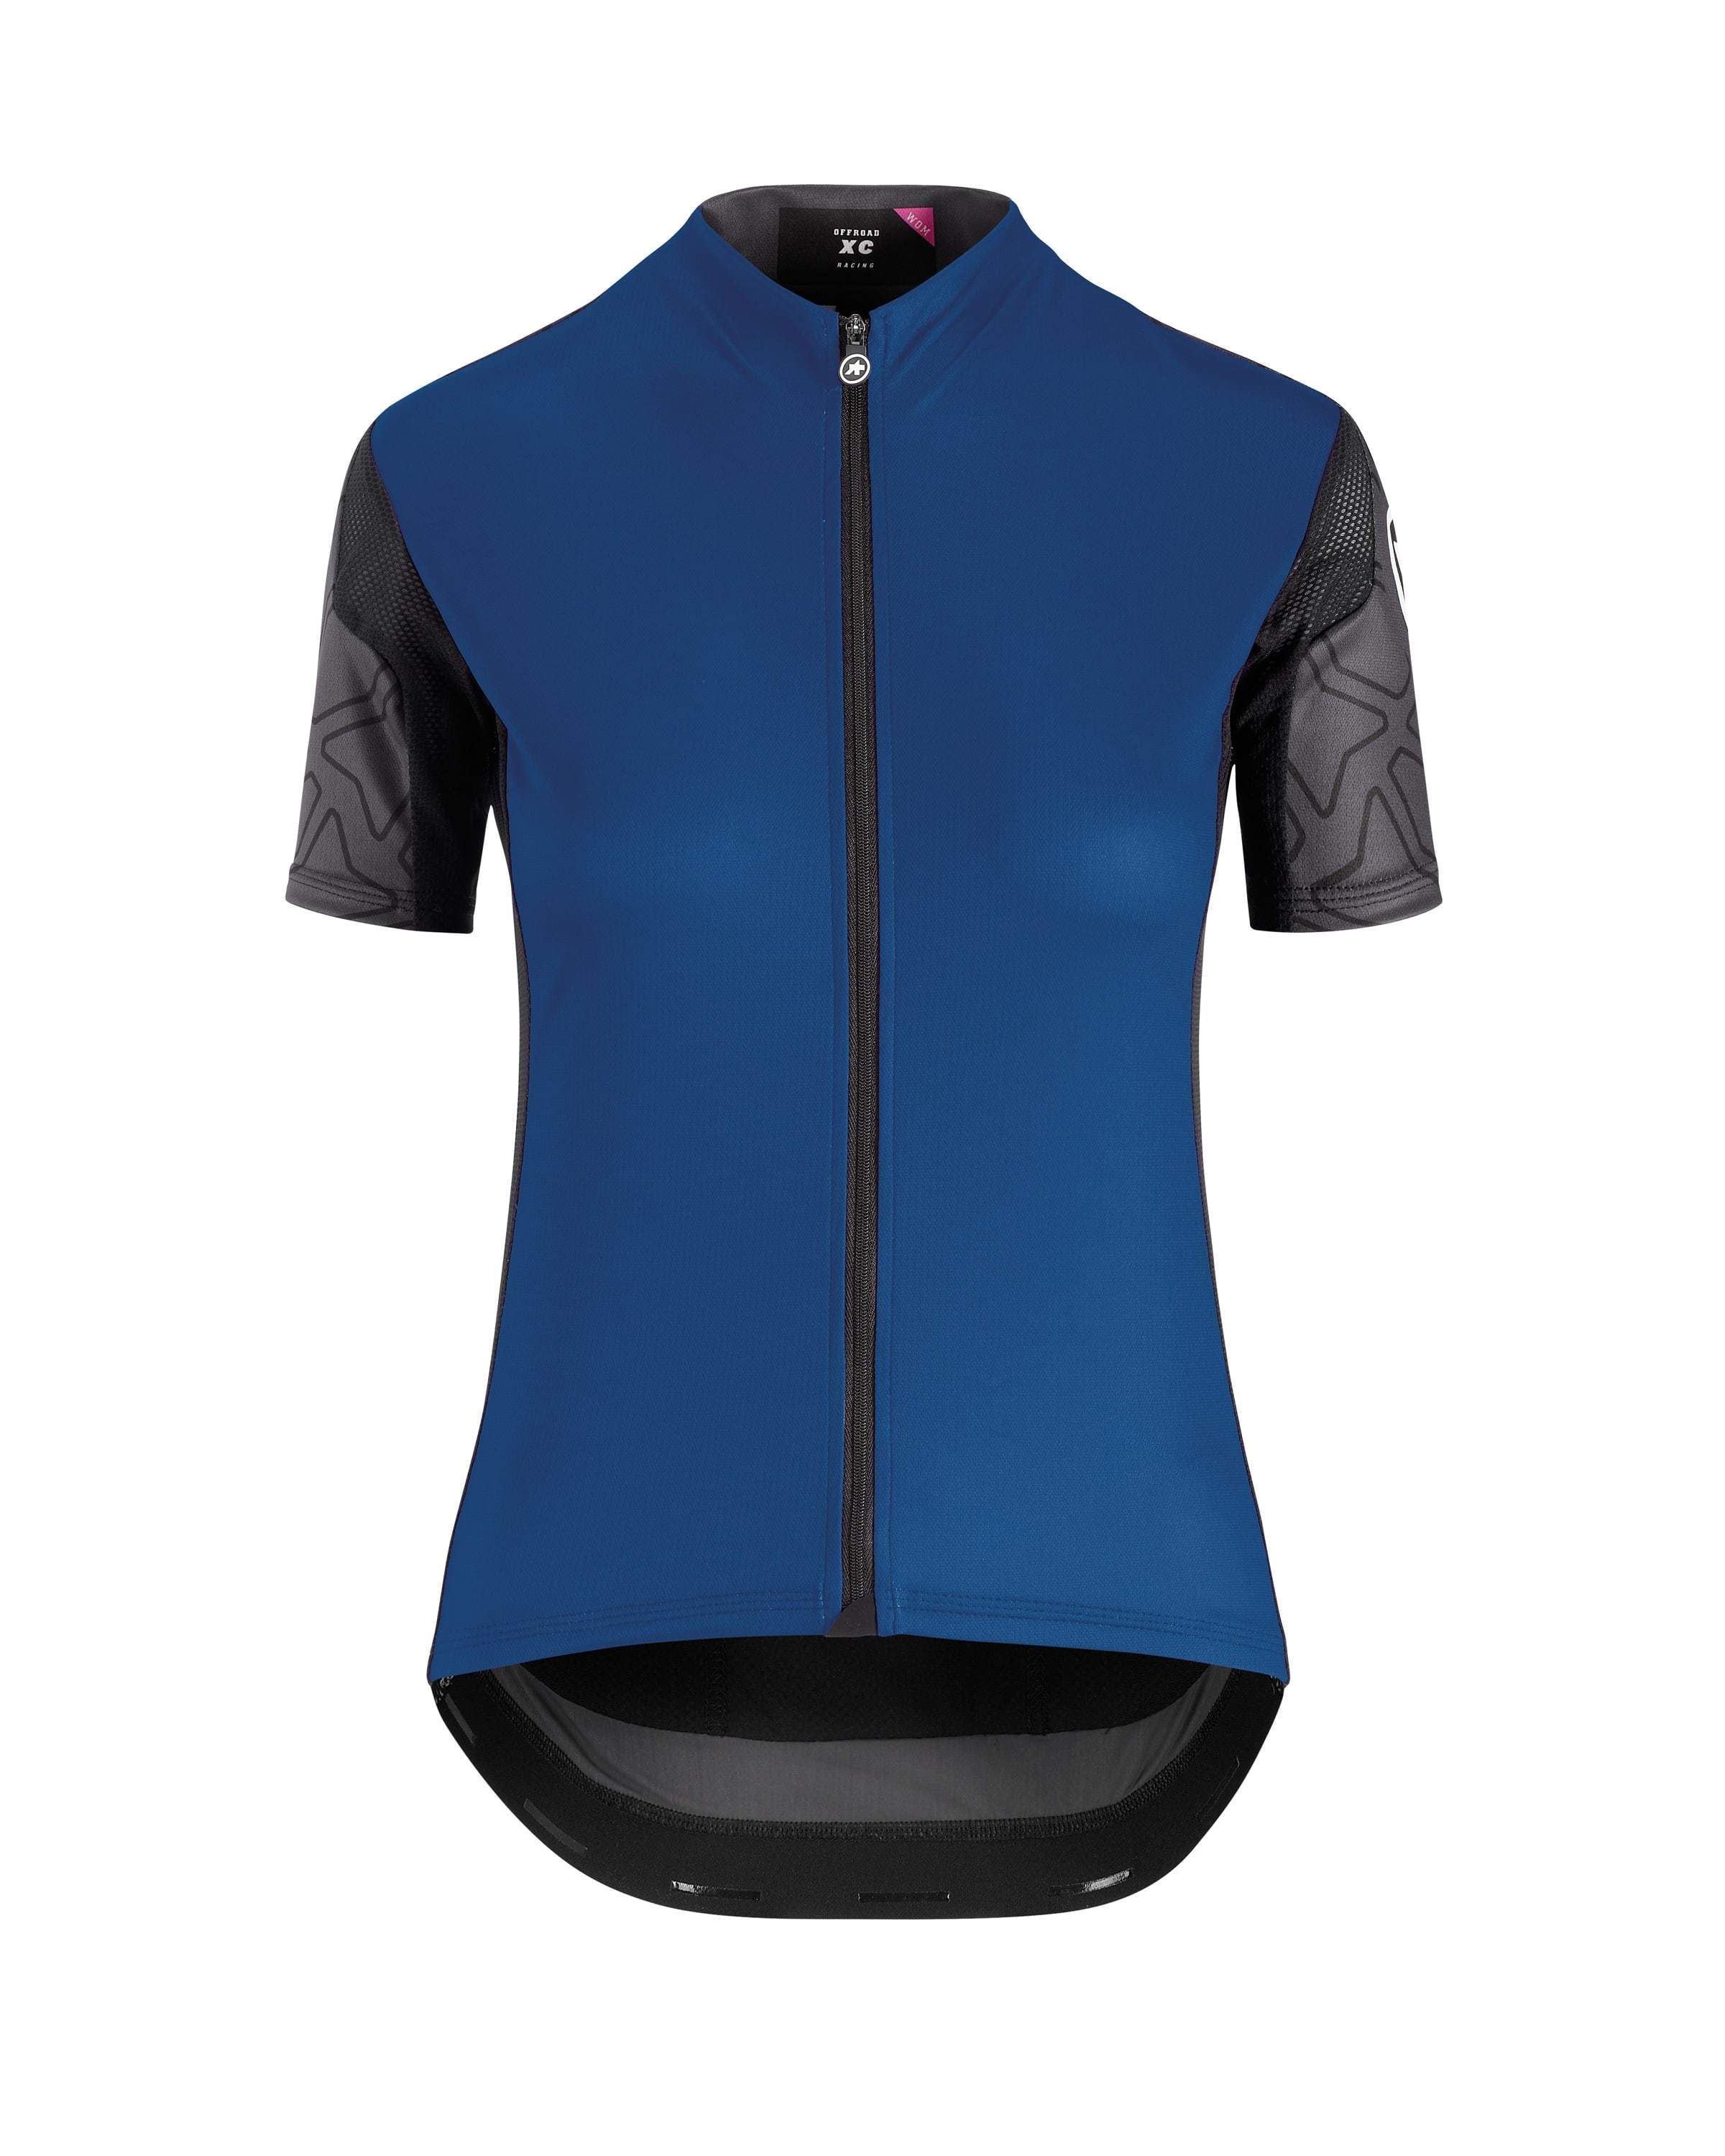 ALTURA Airstream 2 Short Sleeve Jersey Hi-Viz Yellow-Black L - A classic  jersey with Altura Dry ™ technology to keep you dry and comfortable. ee72f6d1c